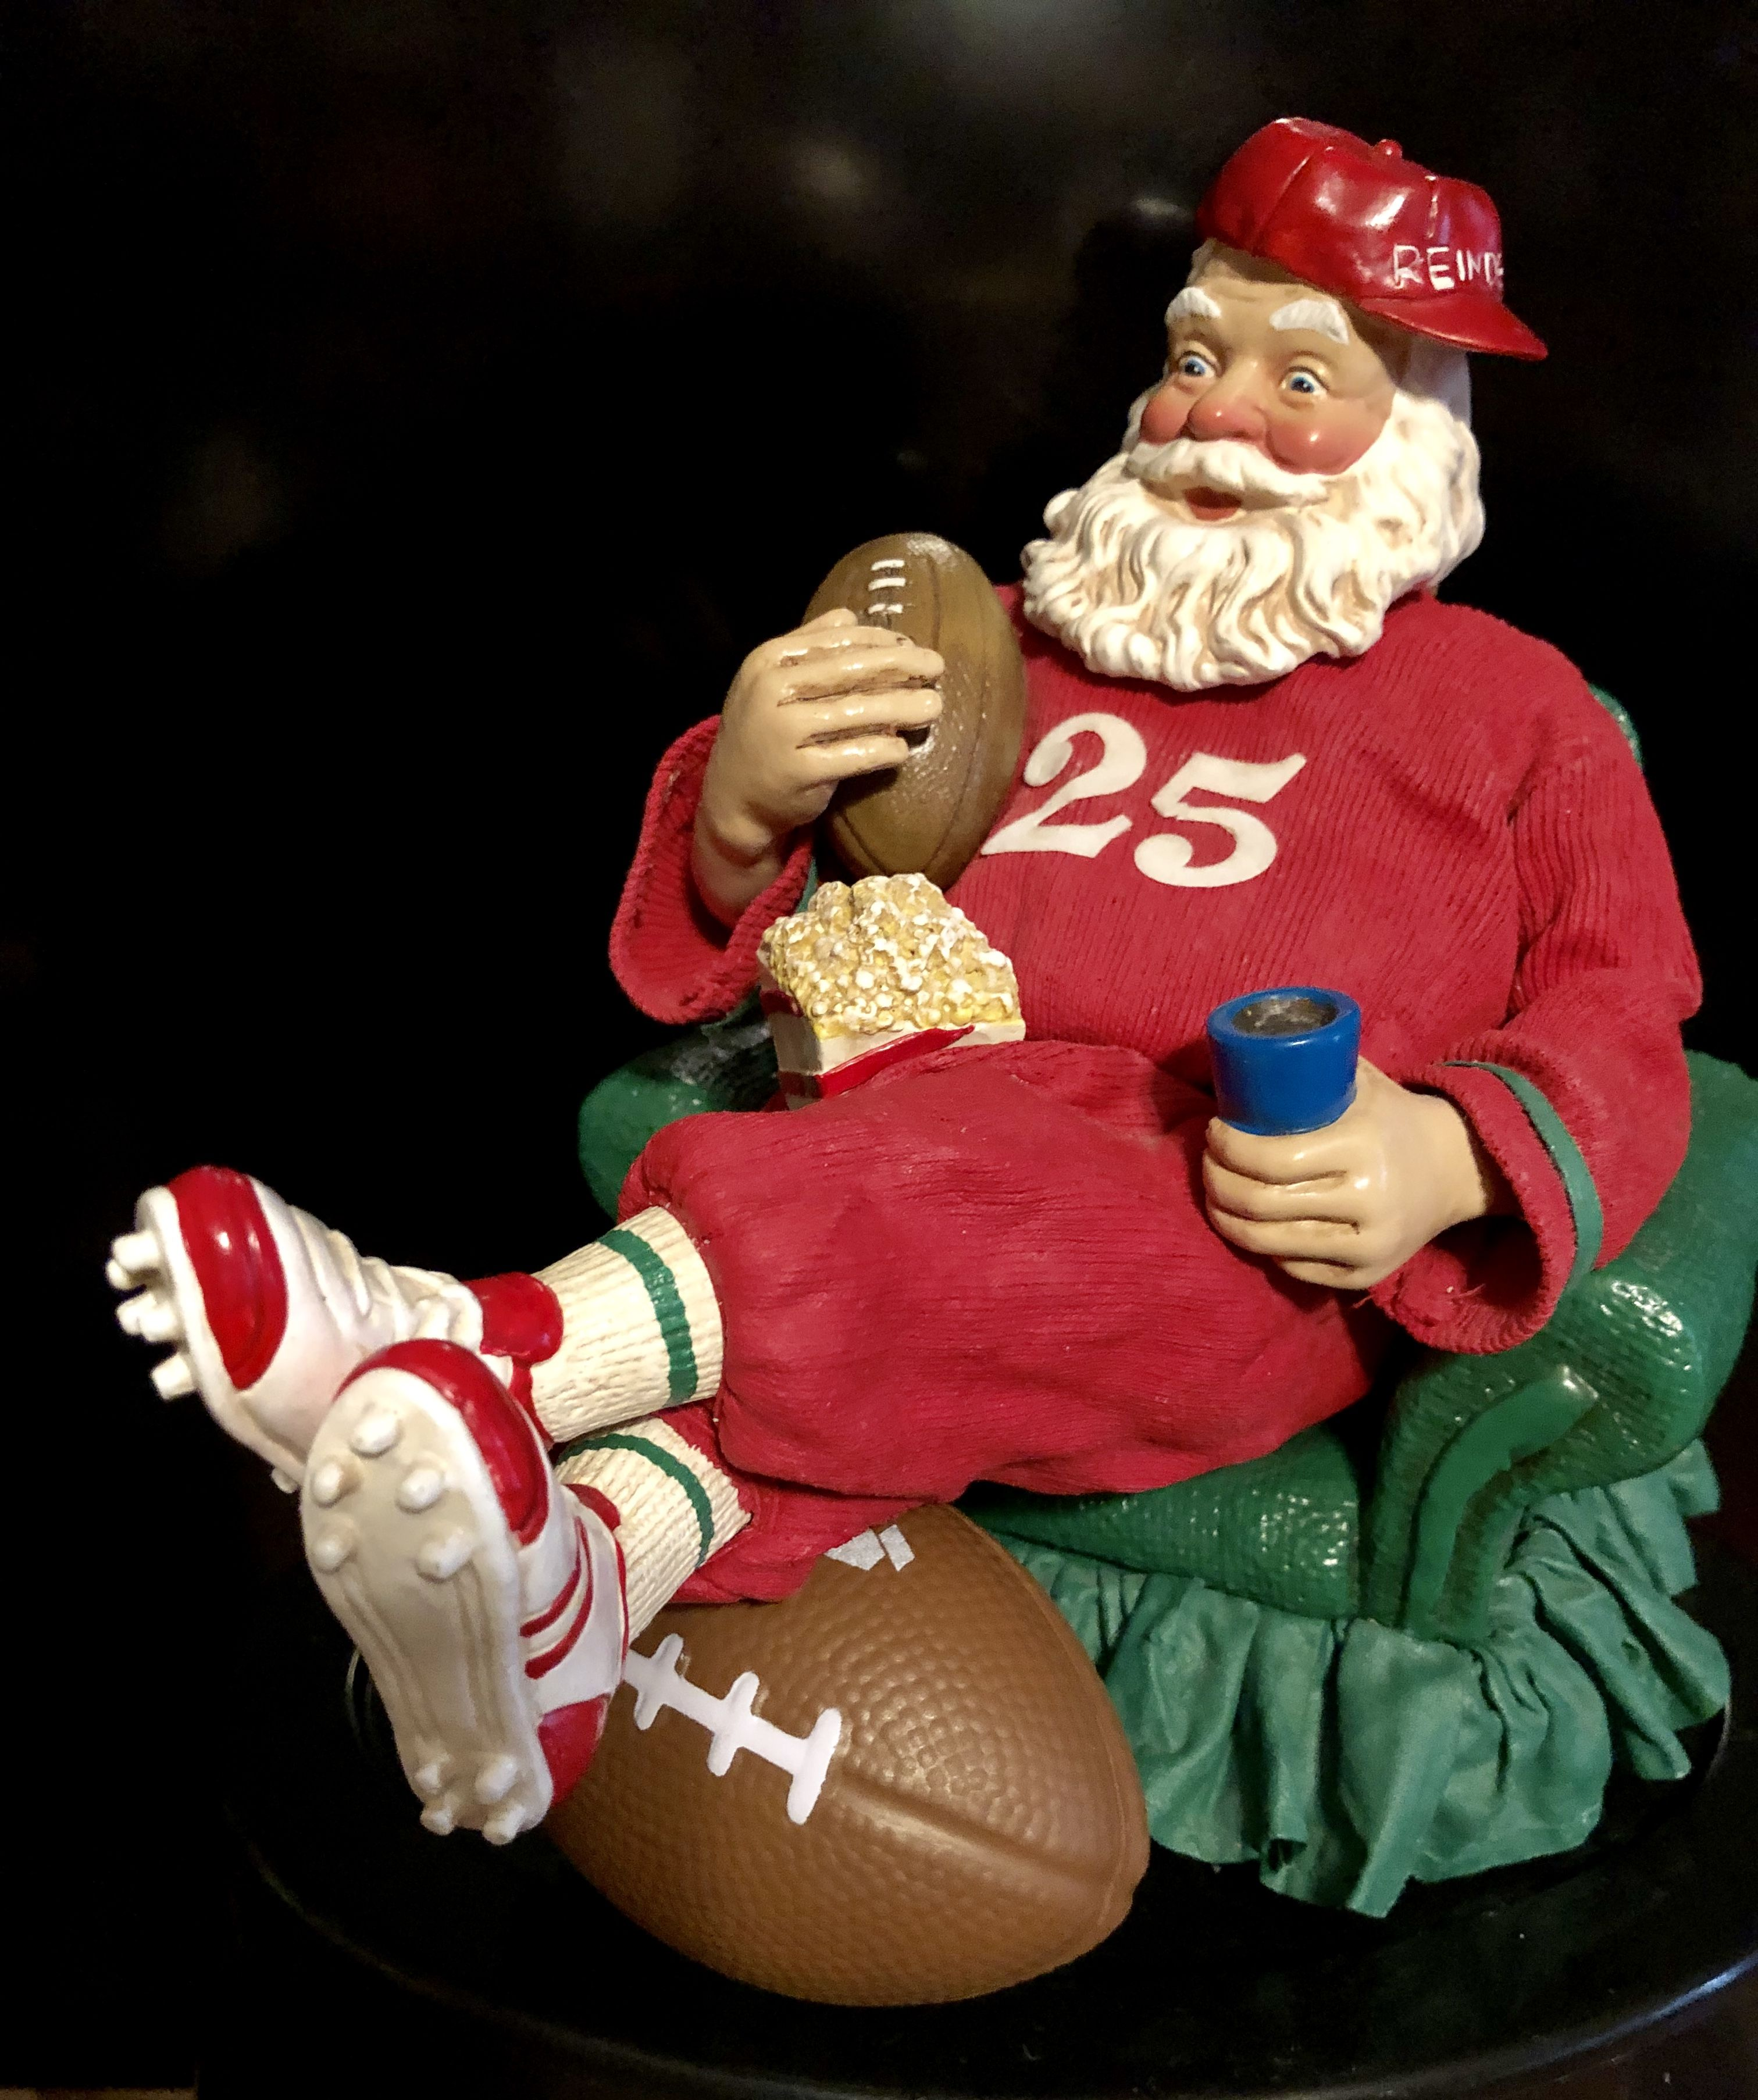 Pin by Lavell Hall on Sports Santa Character, Fictional